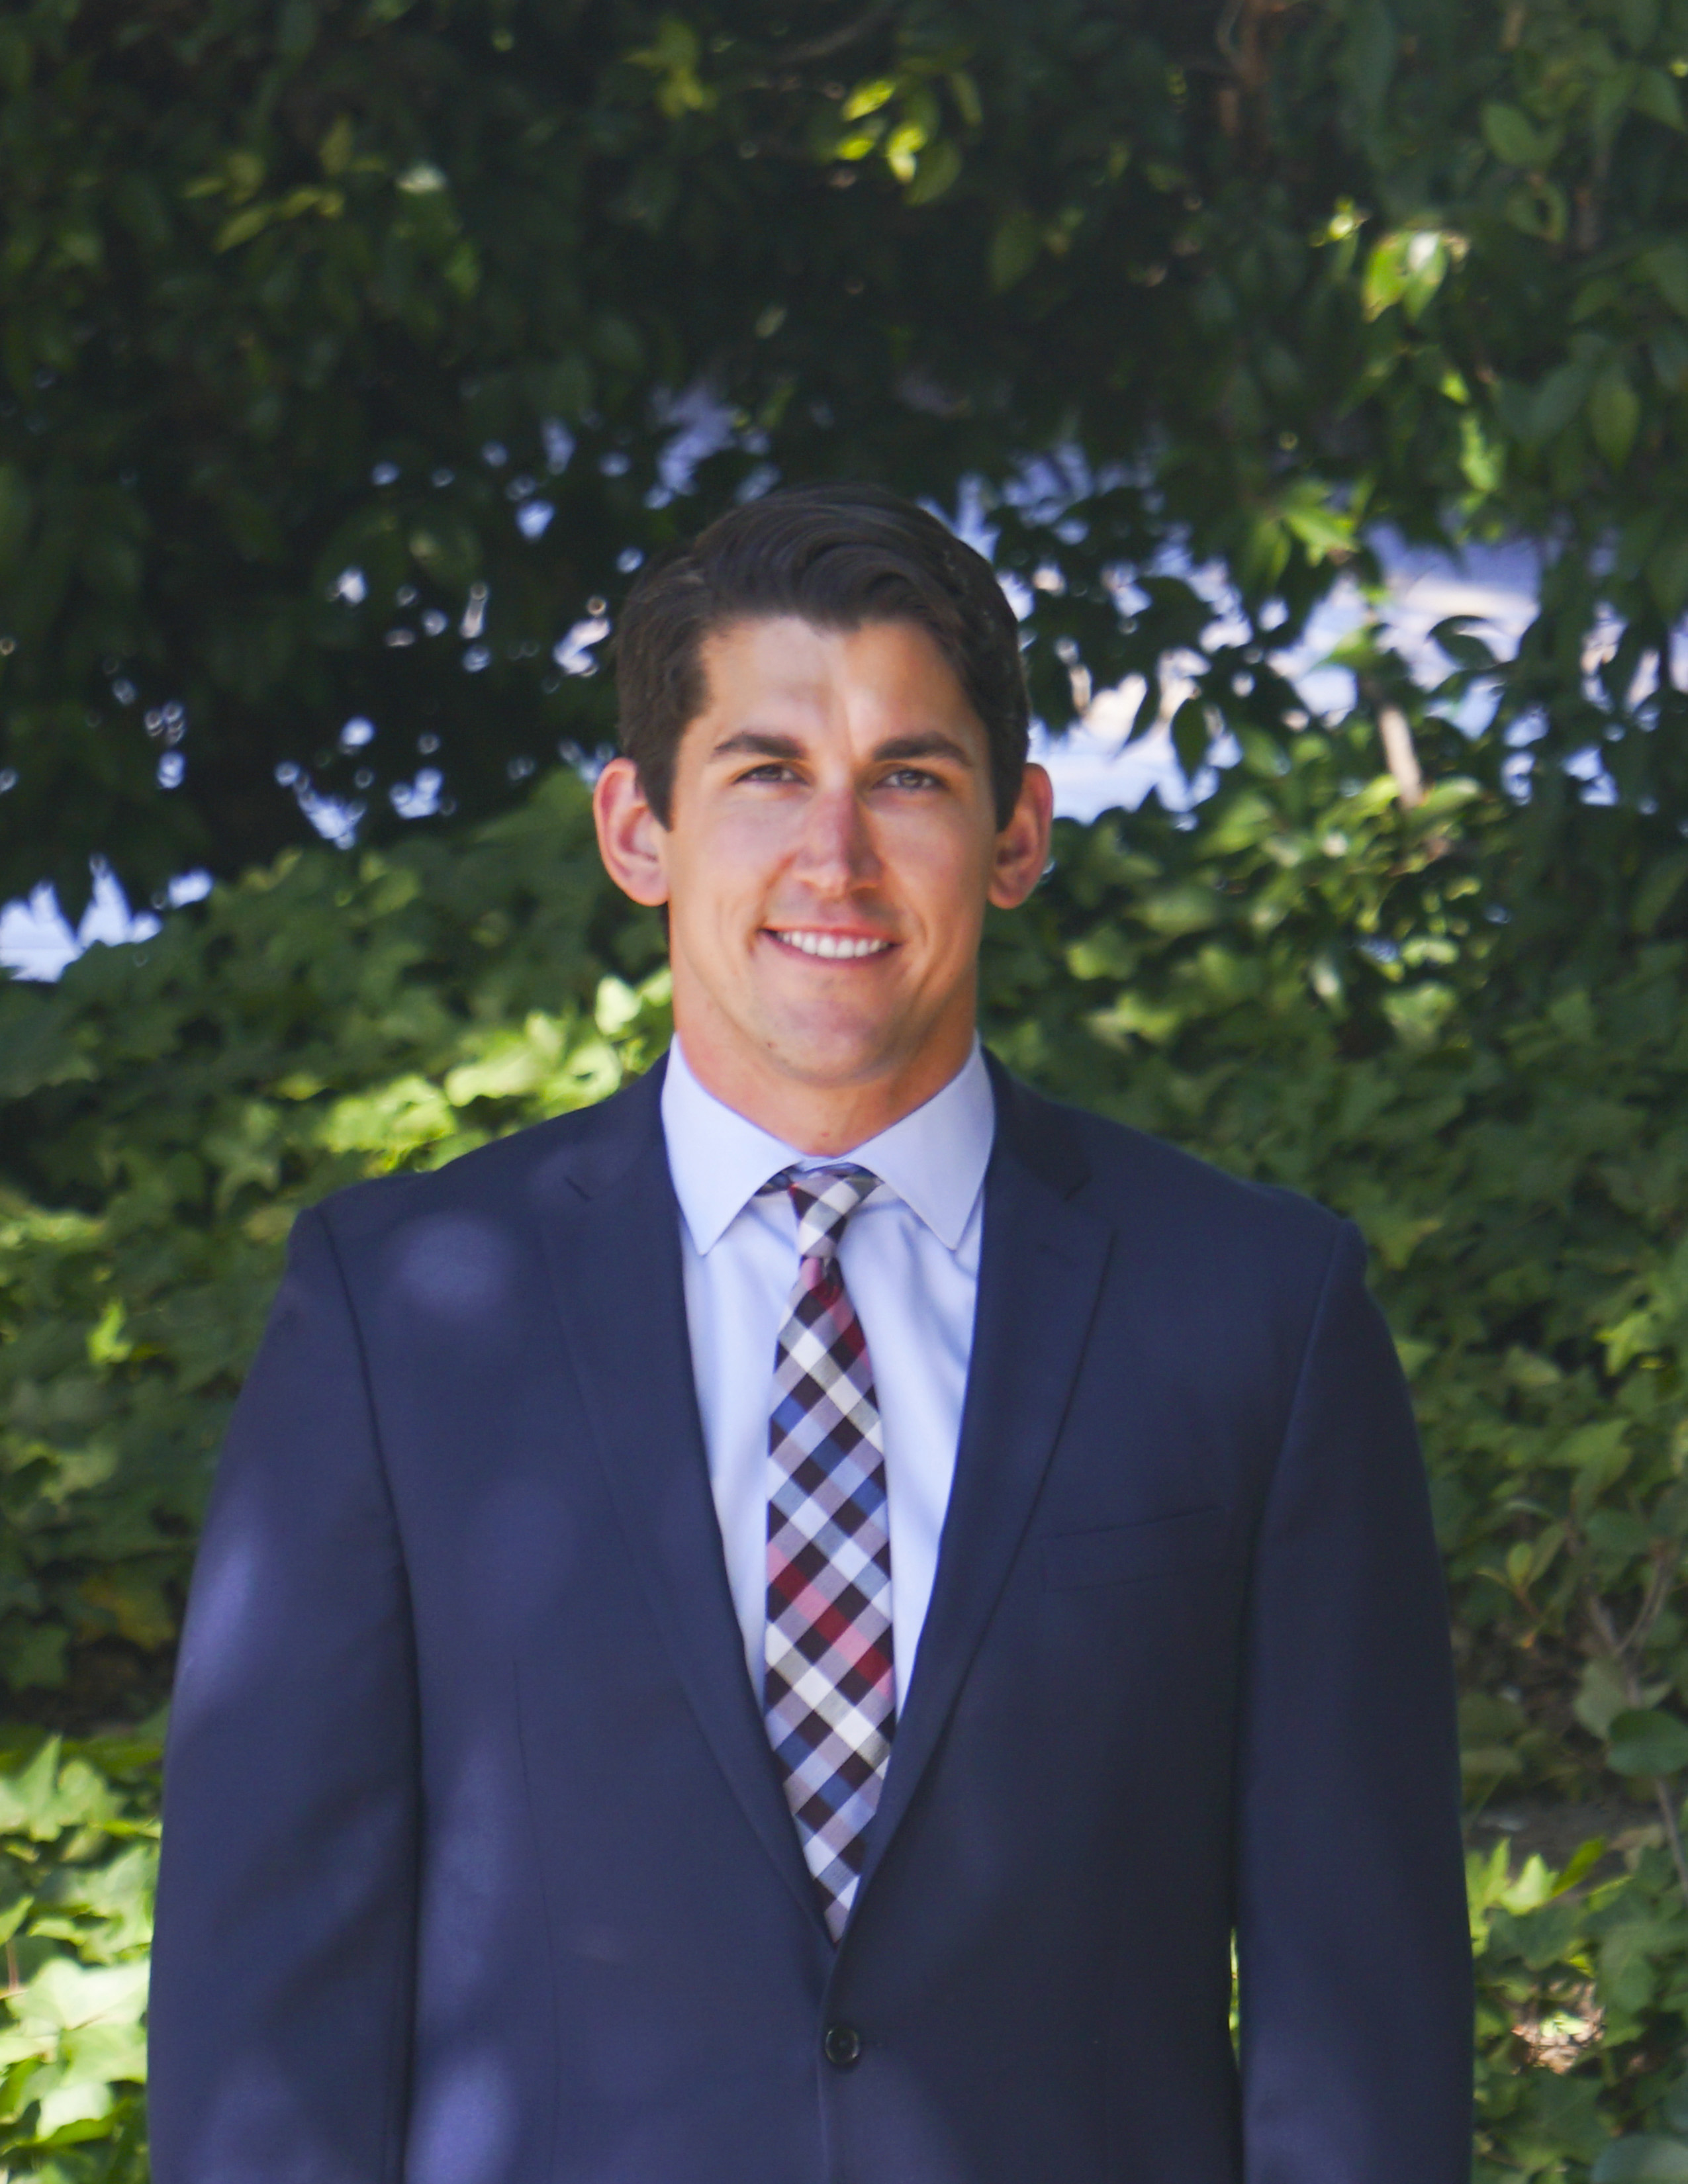 Dominic Rickert, Vice President of Property Management